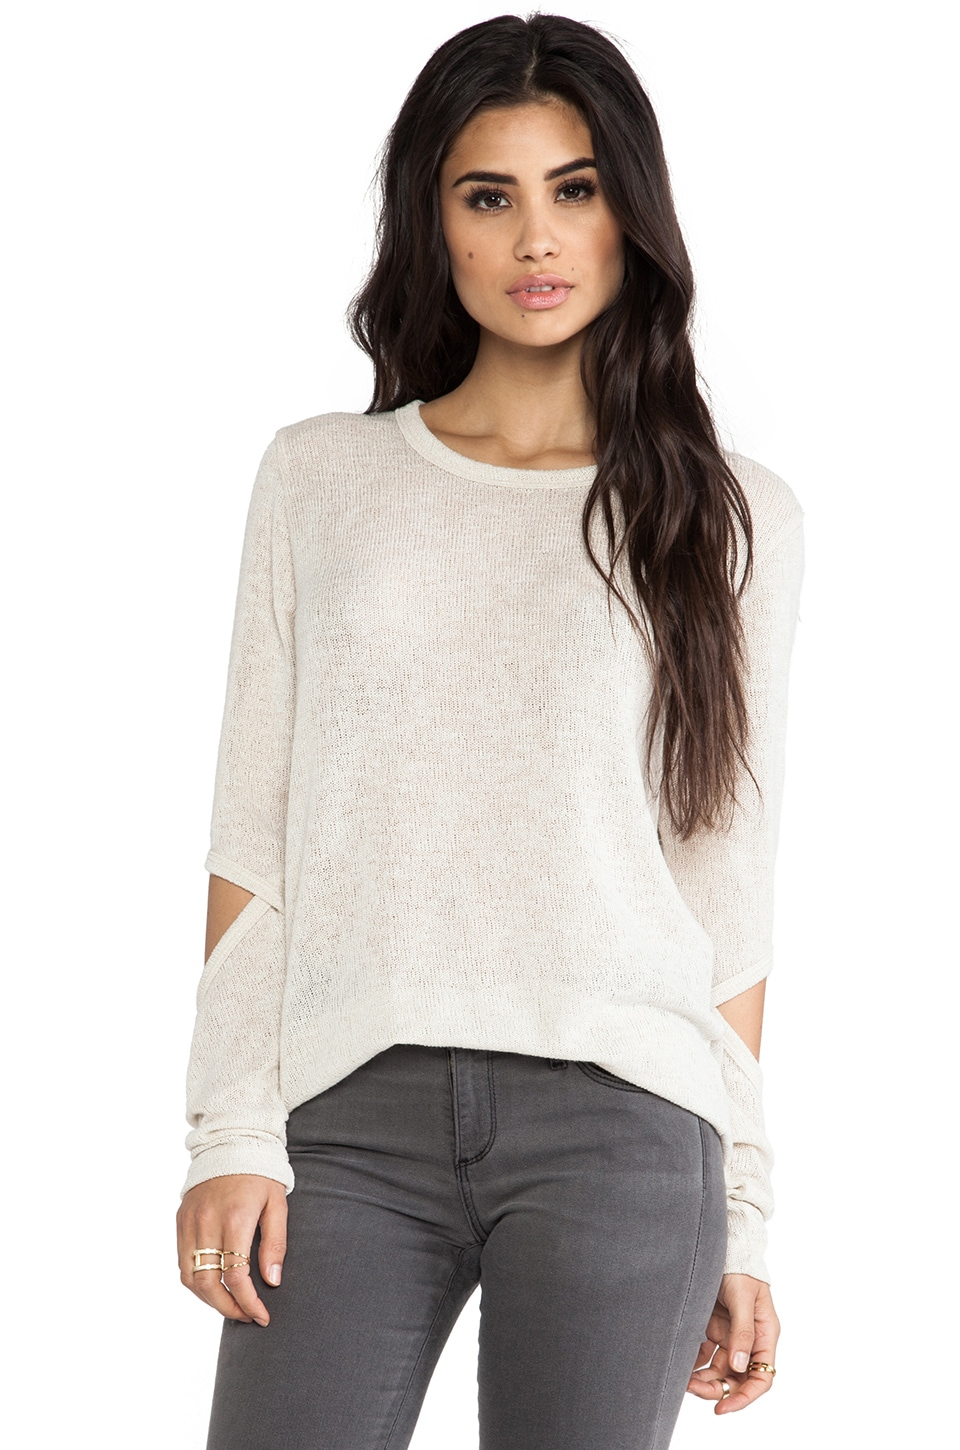 LNA Durango Sweater in Ecru